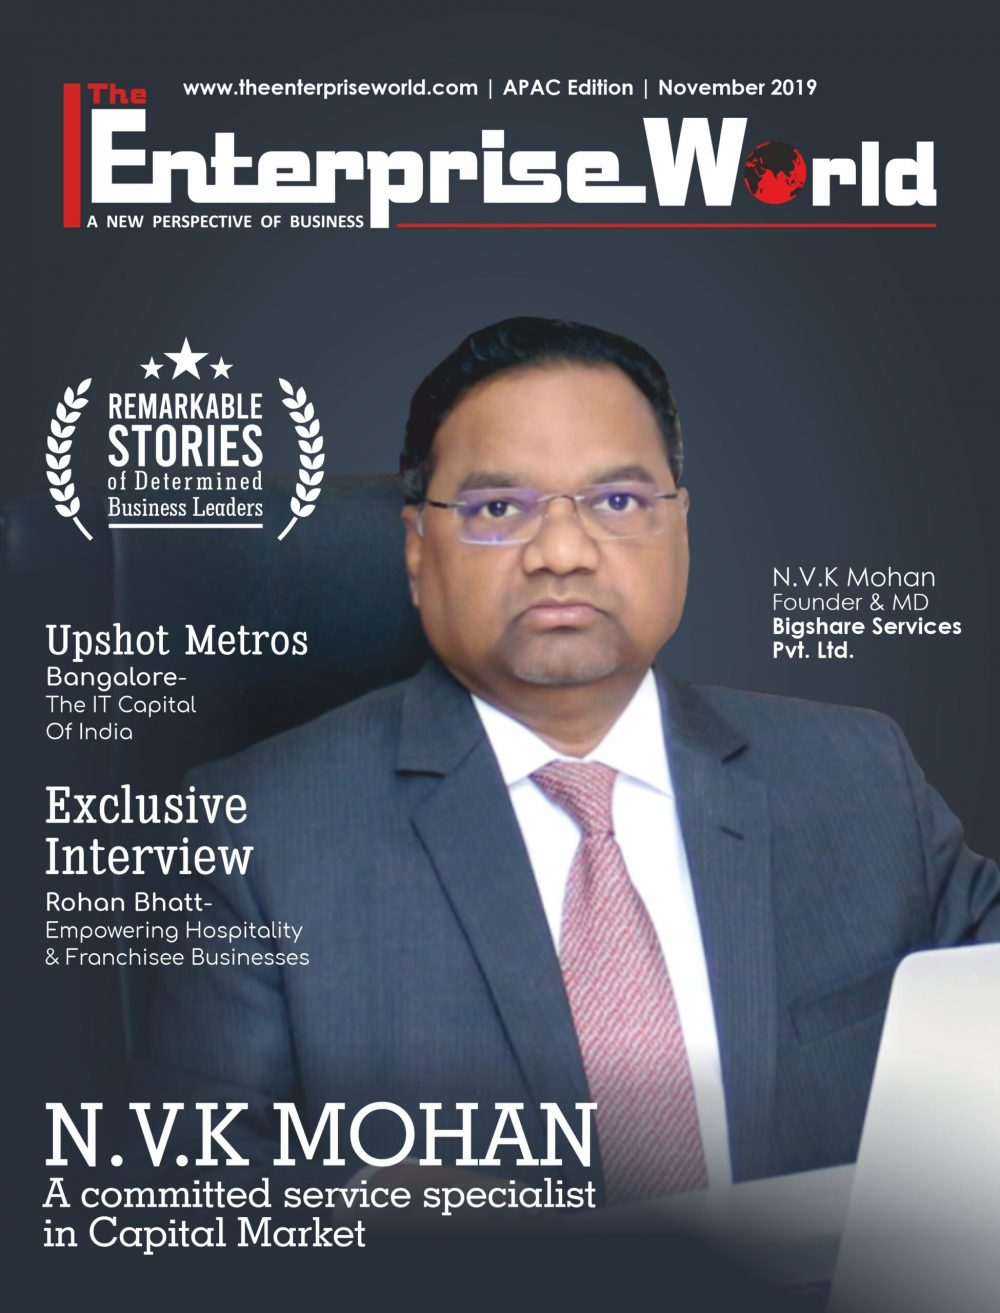 The Remarkable Stories of Determined Business Leaders | The Enterprise World Magazine Coverpage